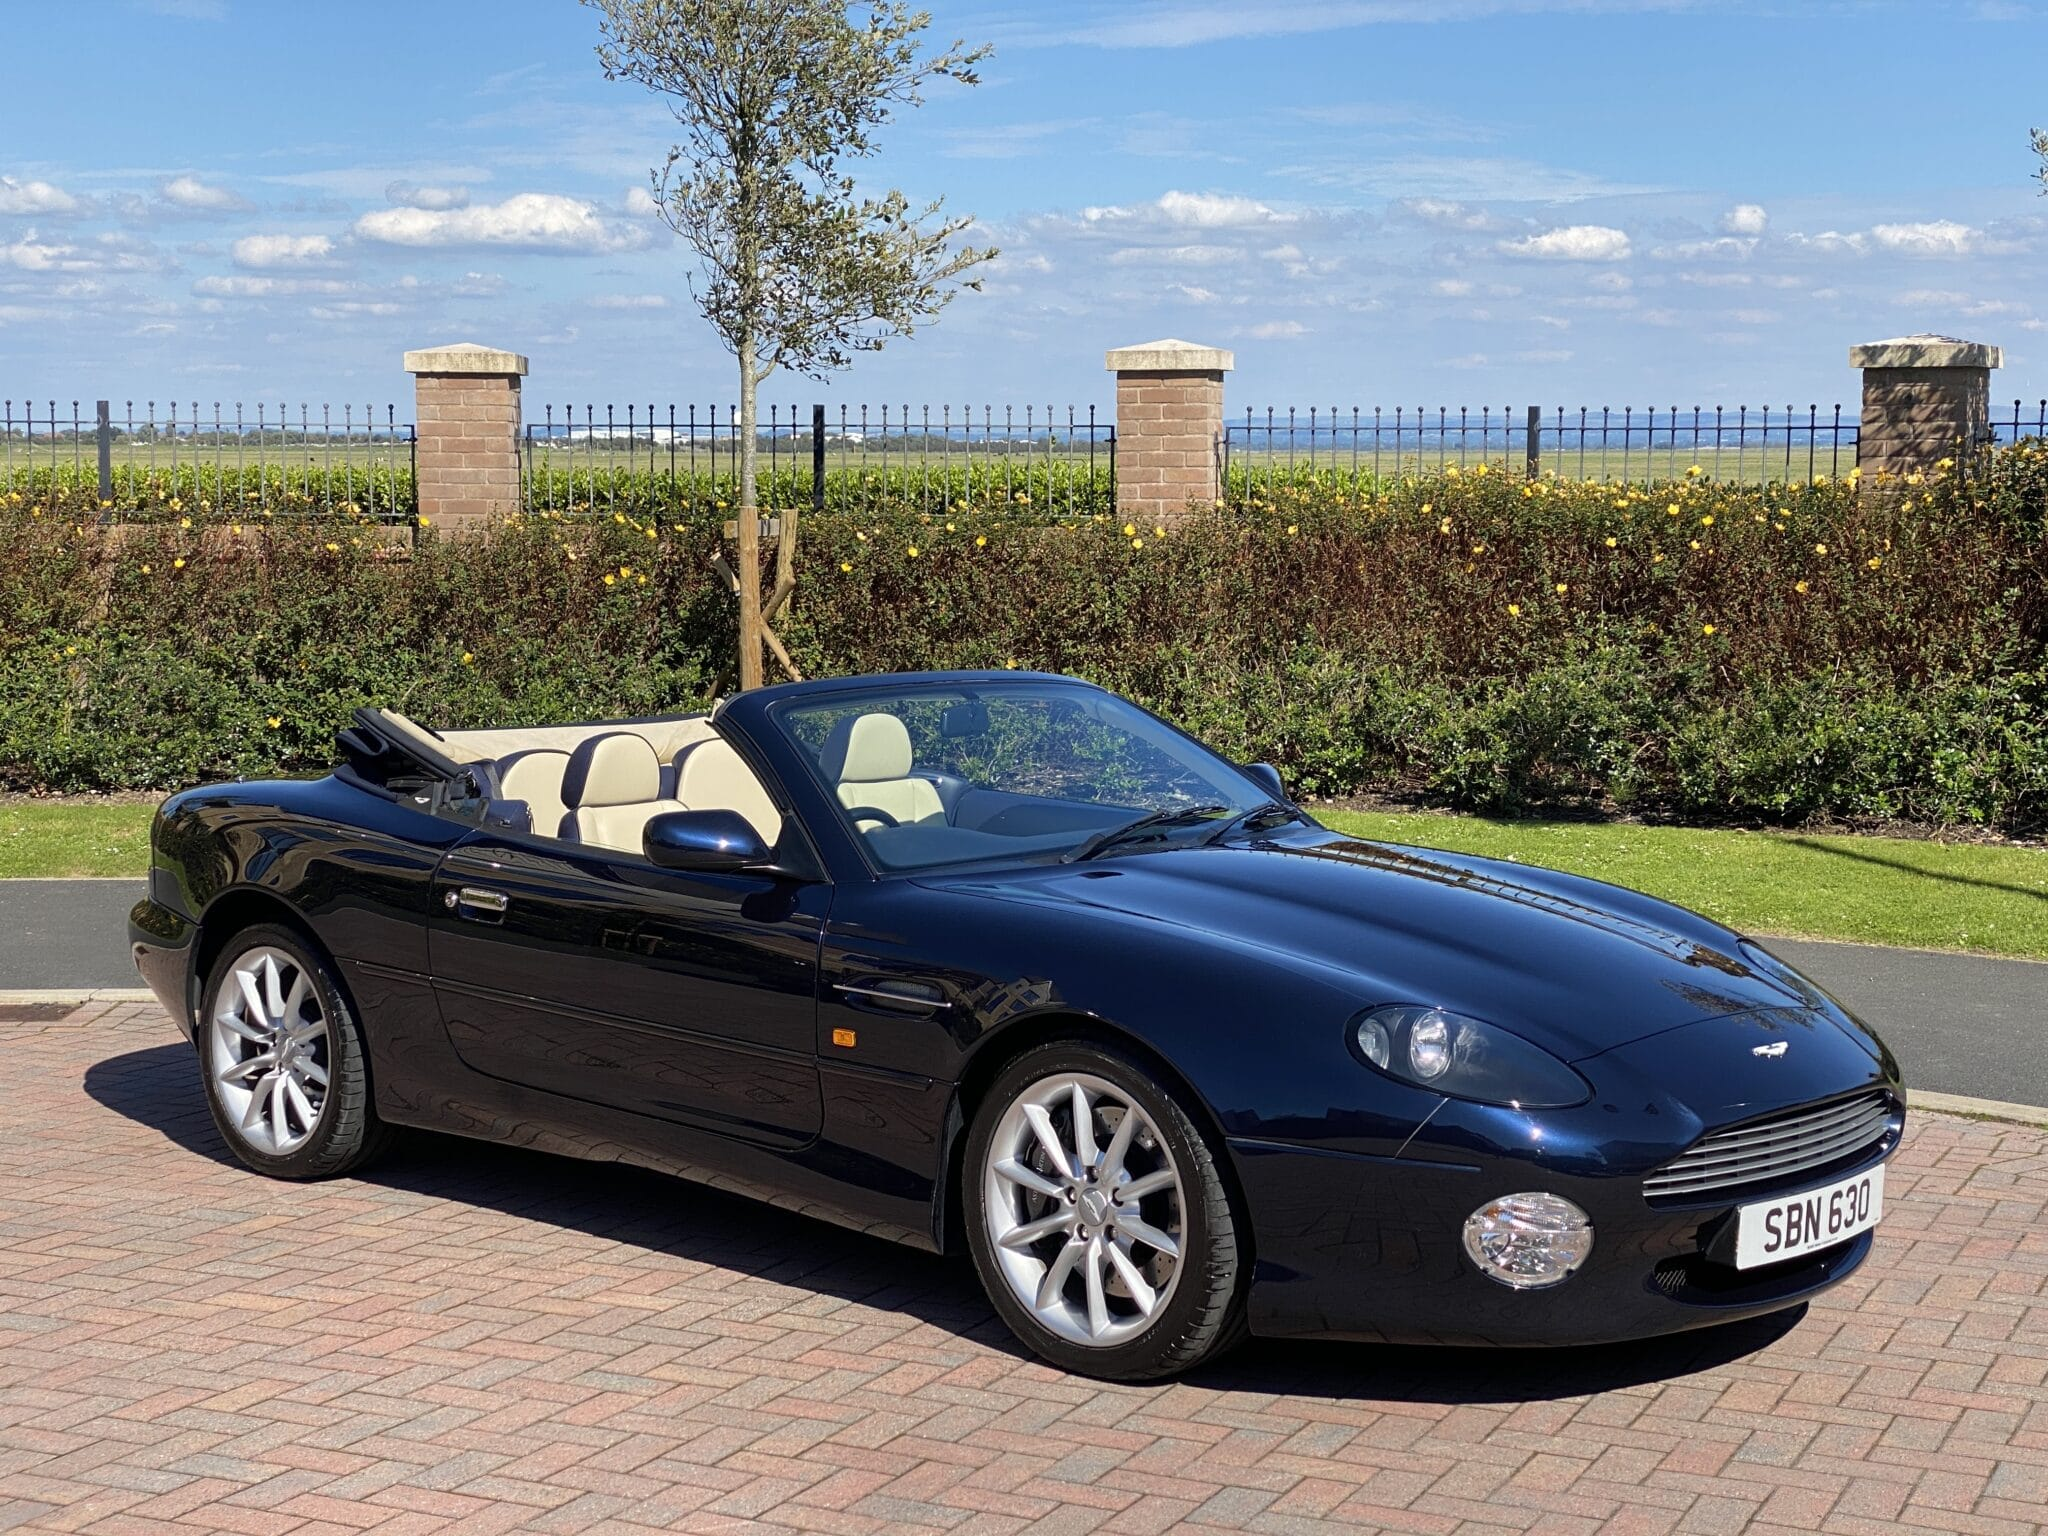 2003 53 ASTON MARTIN DB7 V12 VOLANTE AUTOMATIC 1 Previous Owner FAMSH Only 25K Mls